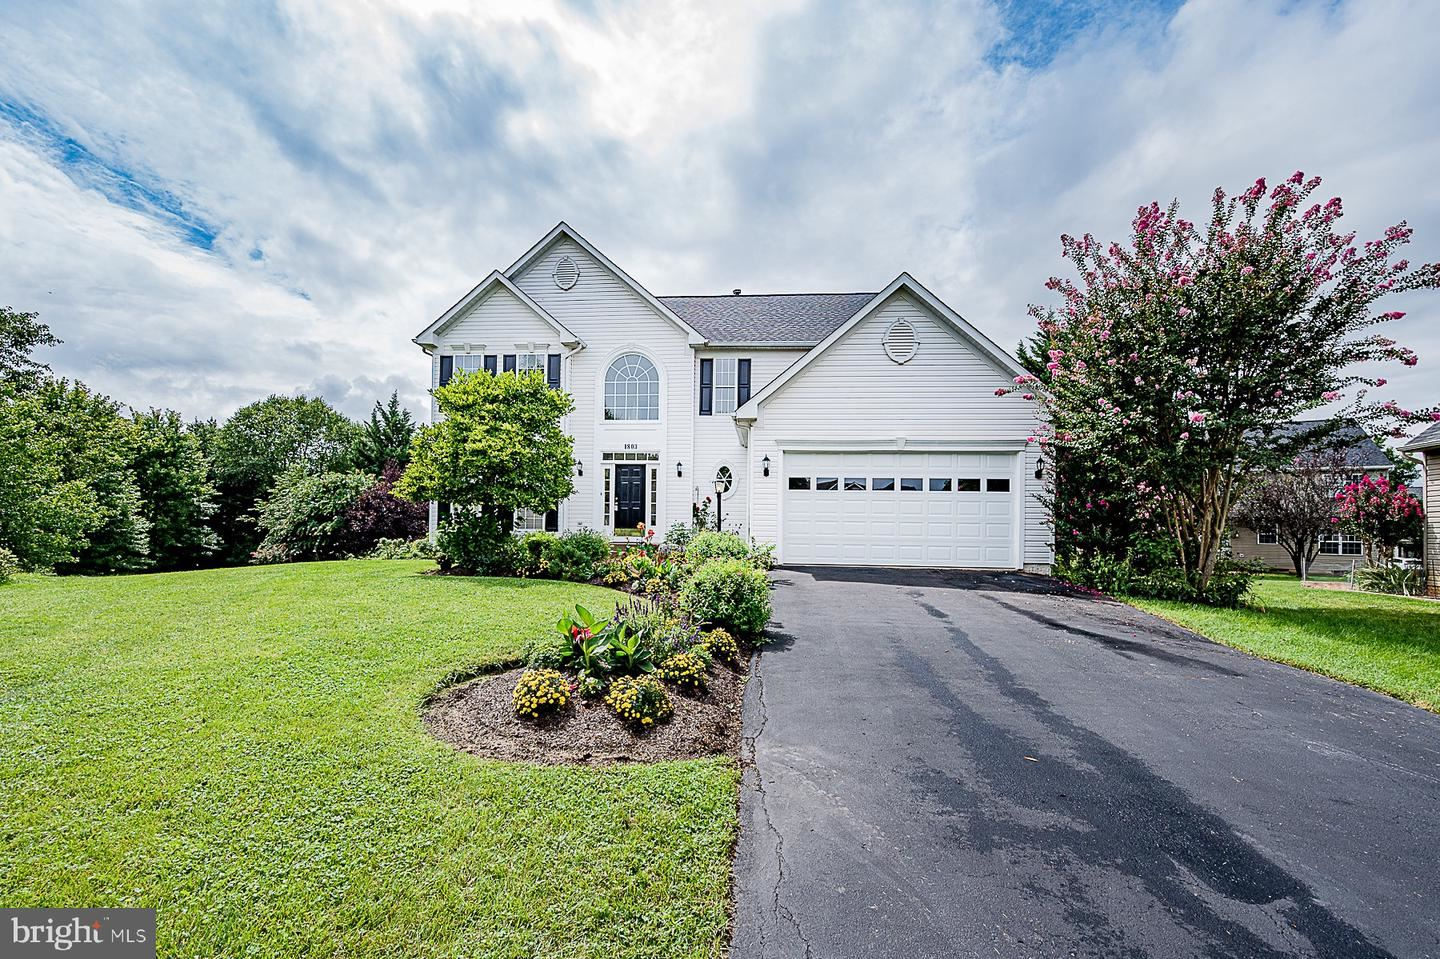 Photo of 1803 DERRS CT, FREDERICK, MD 21701 (MLS # MDFR270616)